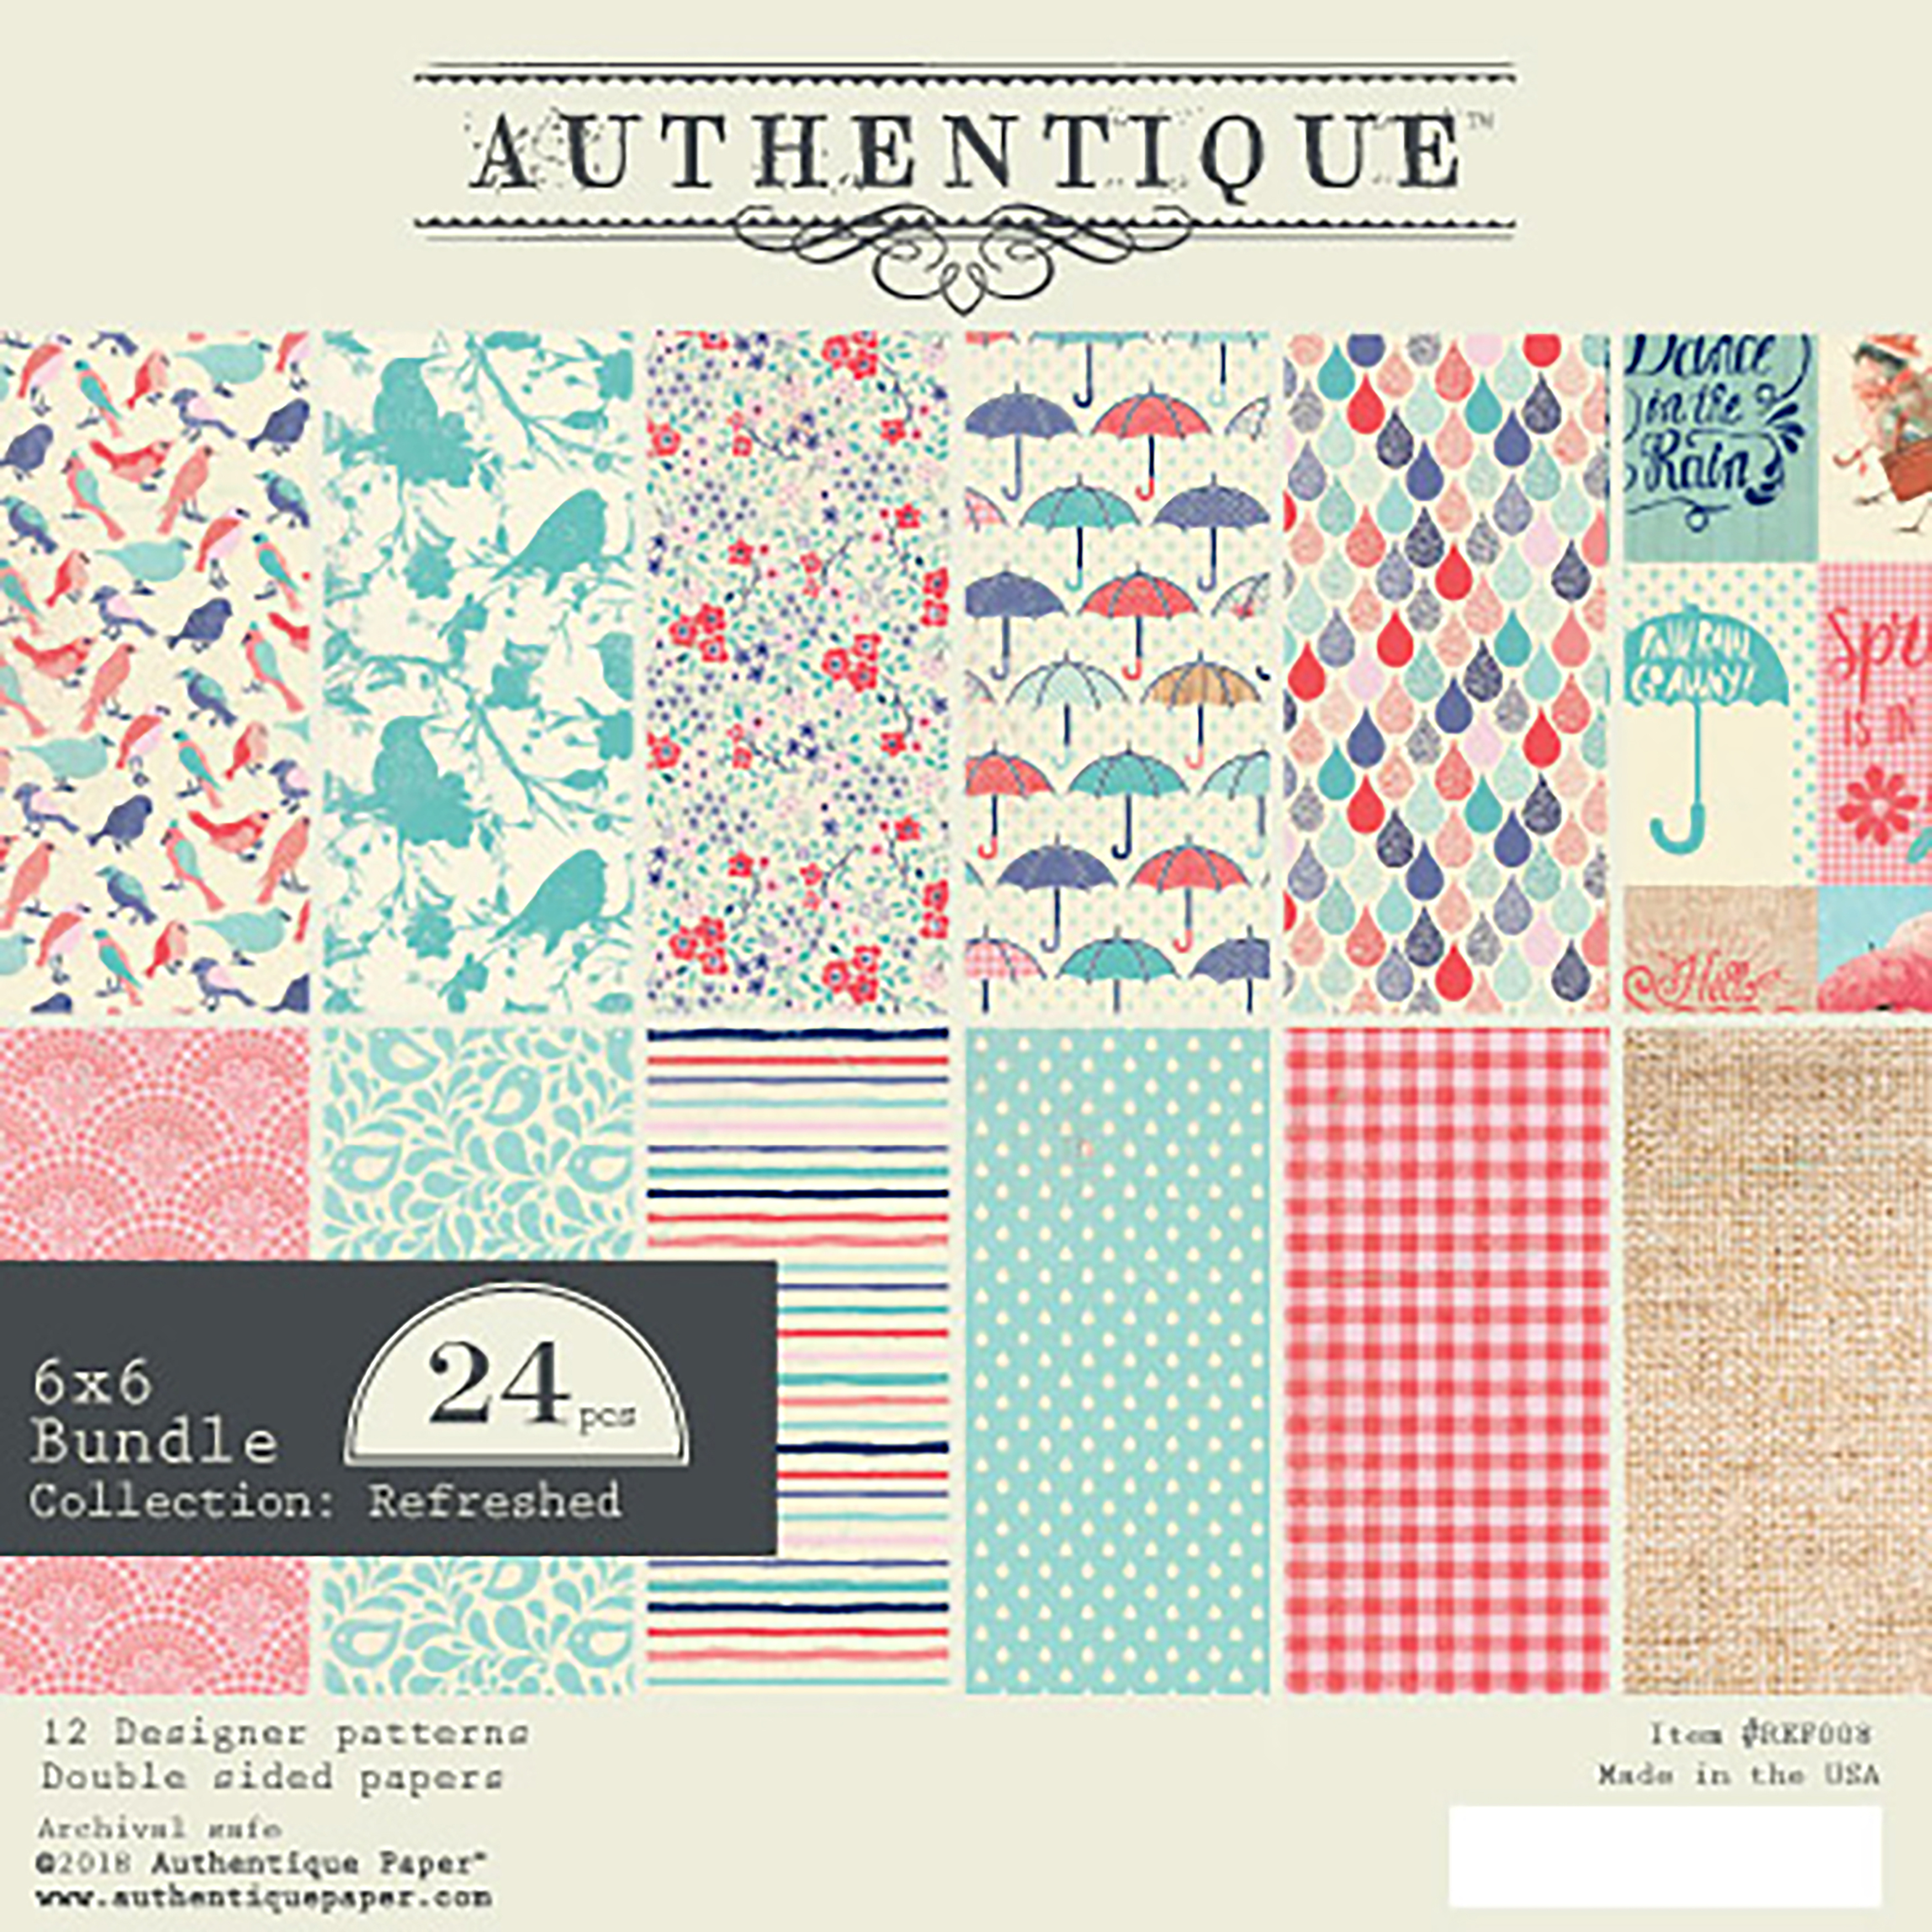 Authentique - Refreshed Paper Pad 6x6